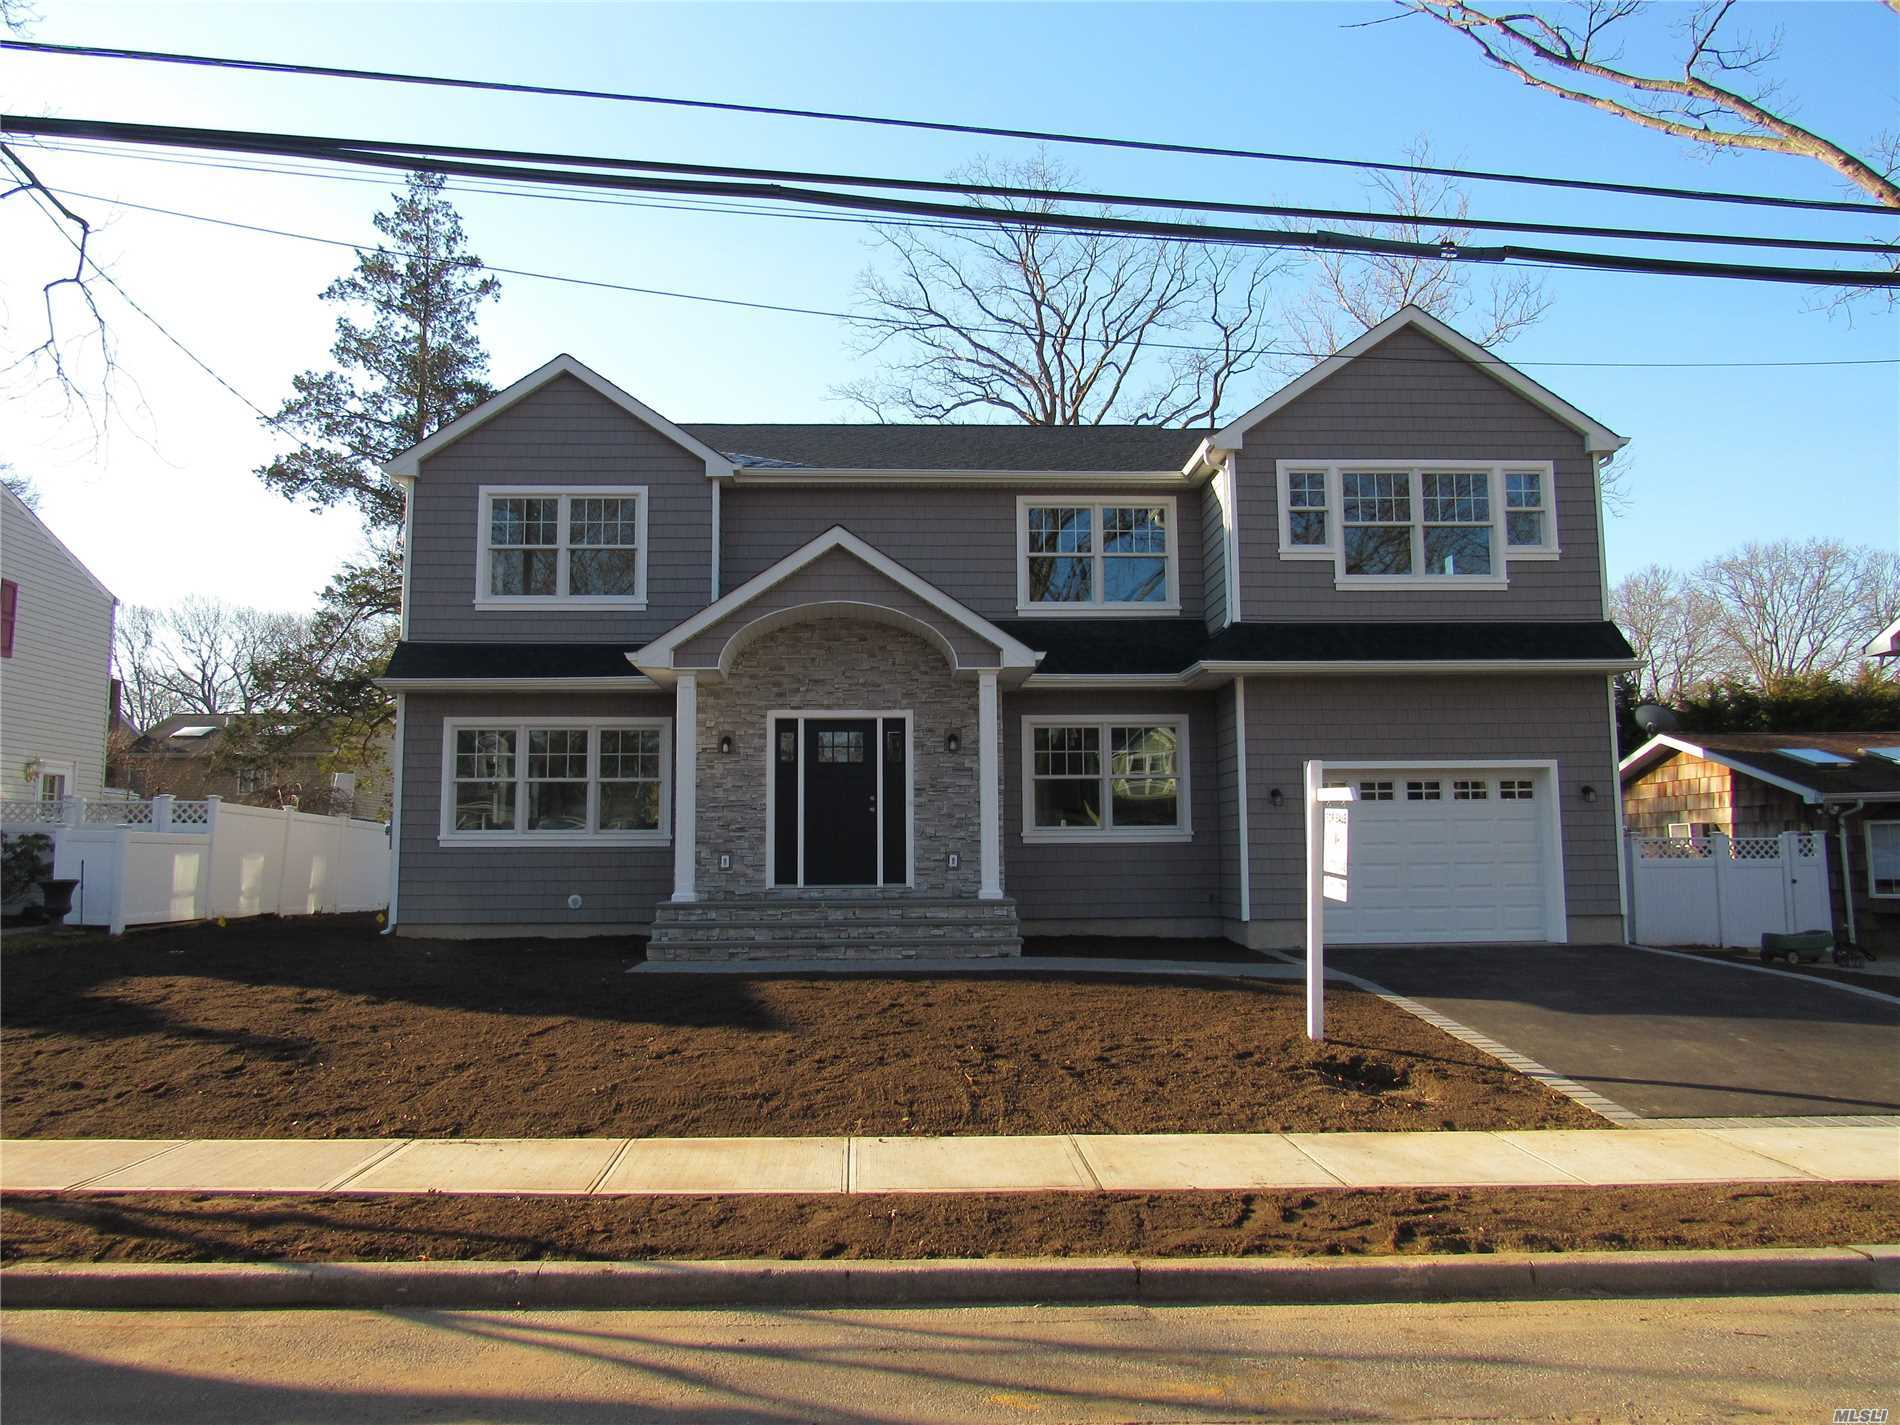 Prime Massapequa Woods Mid Block Location, New Construction Custom Colonial Features A Huge Backyard, Open Layout, Living Room With Gas Fireplace, Top Of The Line Custom Kitchen, Formal Dining Room, Master Suite Features Spa Bath with Oversized Soaking Tub & Walk In Rain Shower, Large Walk In Closet, Additional Double Custom Closet, 4 Additional Spacious Bedrooms All With Double Custom Closets, Large Full Bathroom, 2nd Floor Laundry Room, Attic Storage, 2 Zone Central Air, Anderson Windows